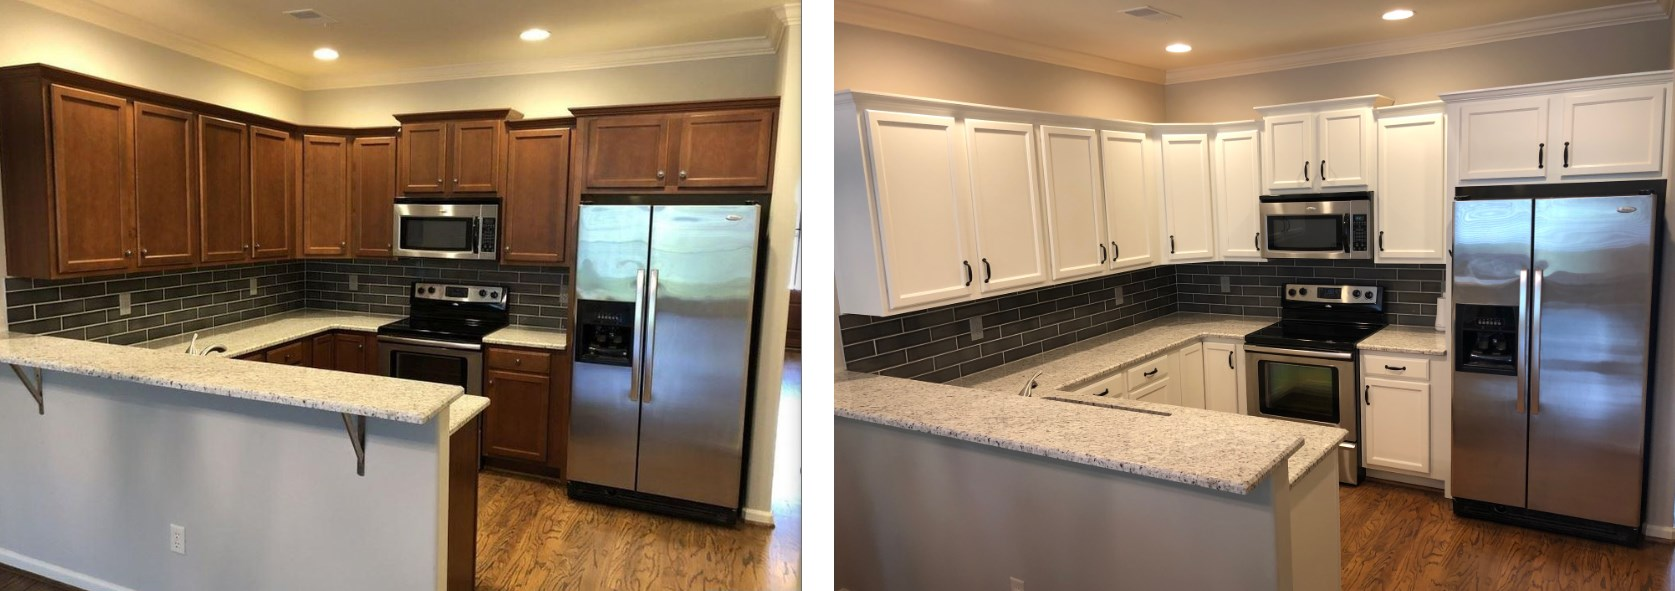 before and after remodel